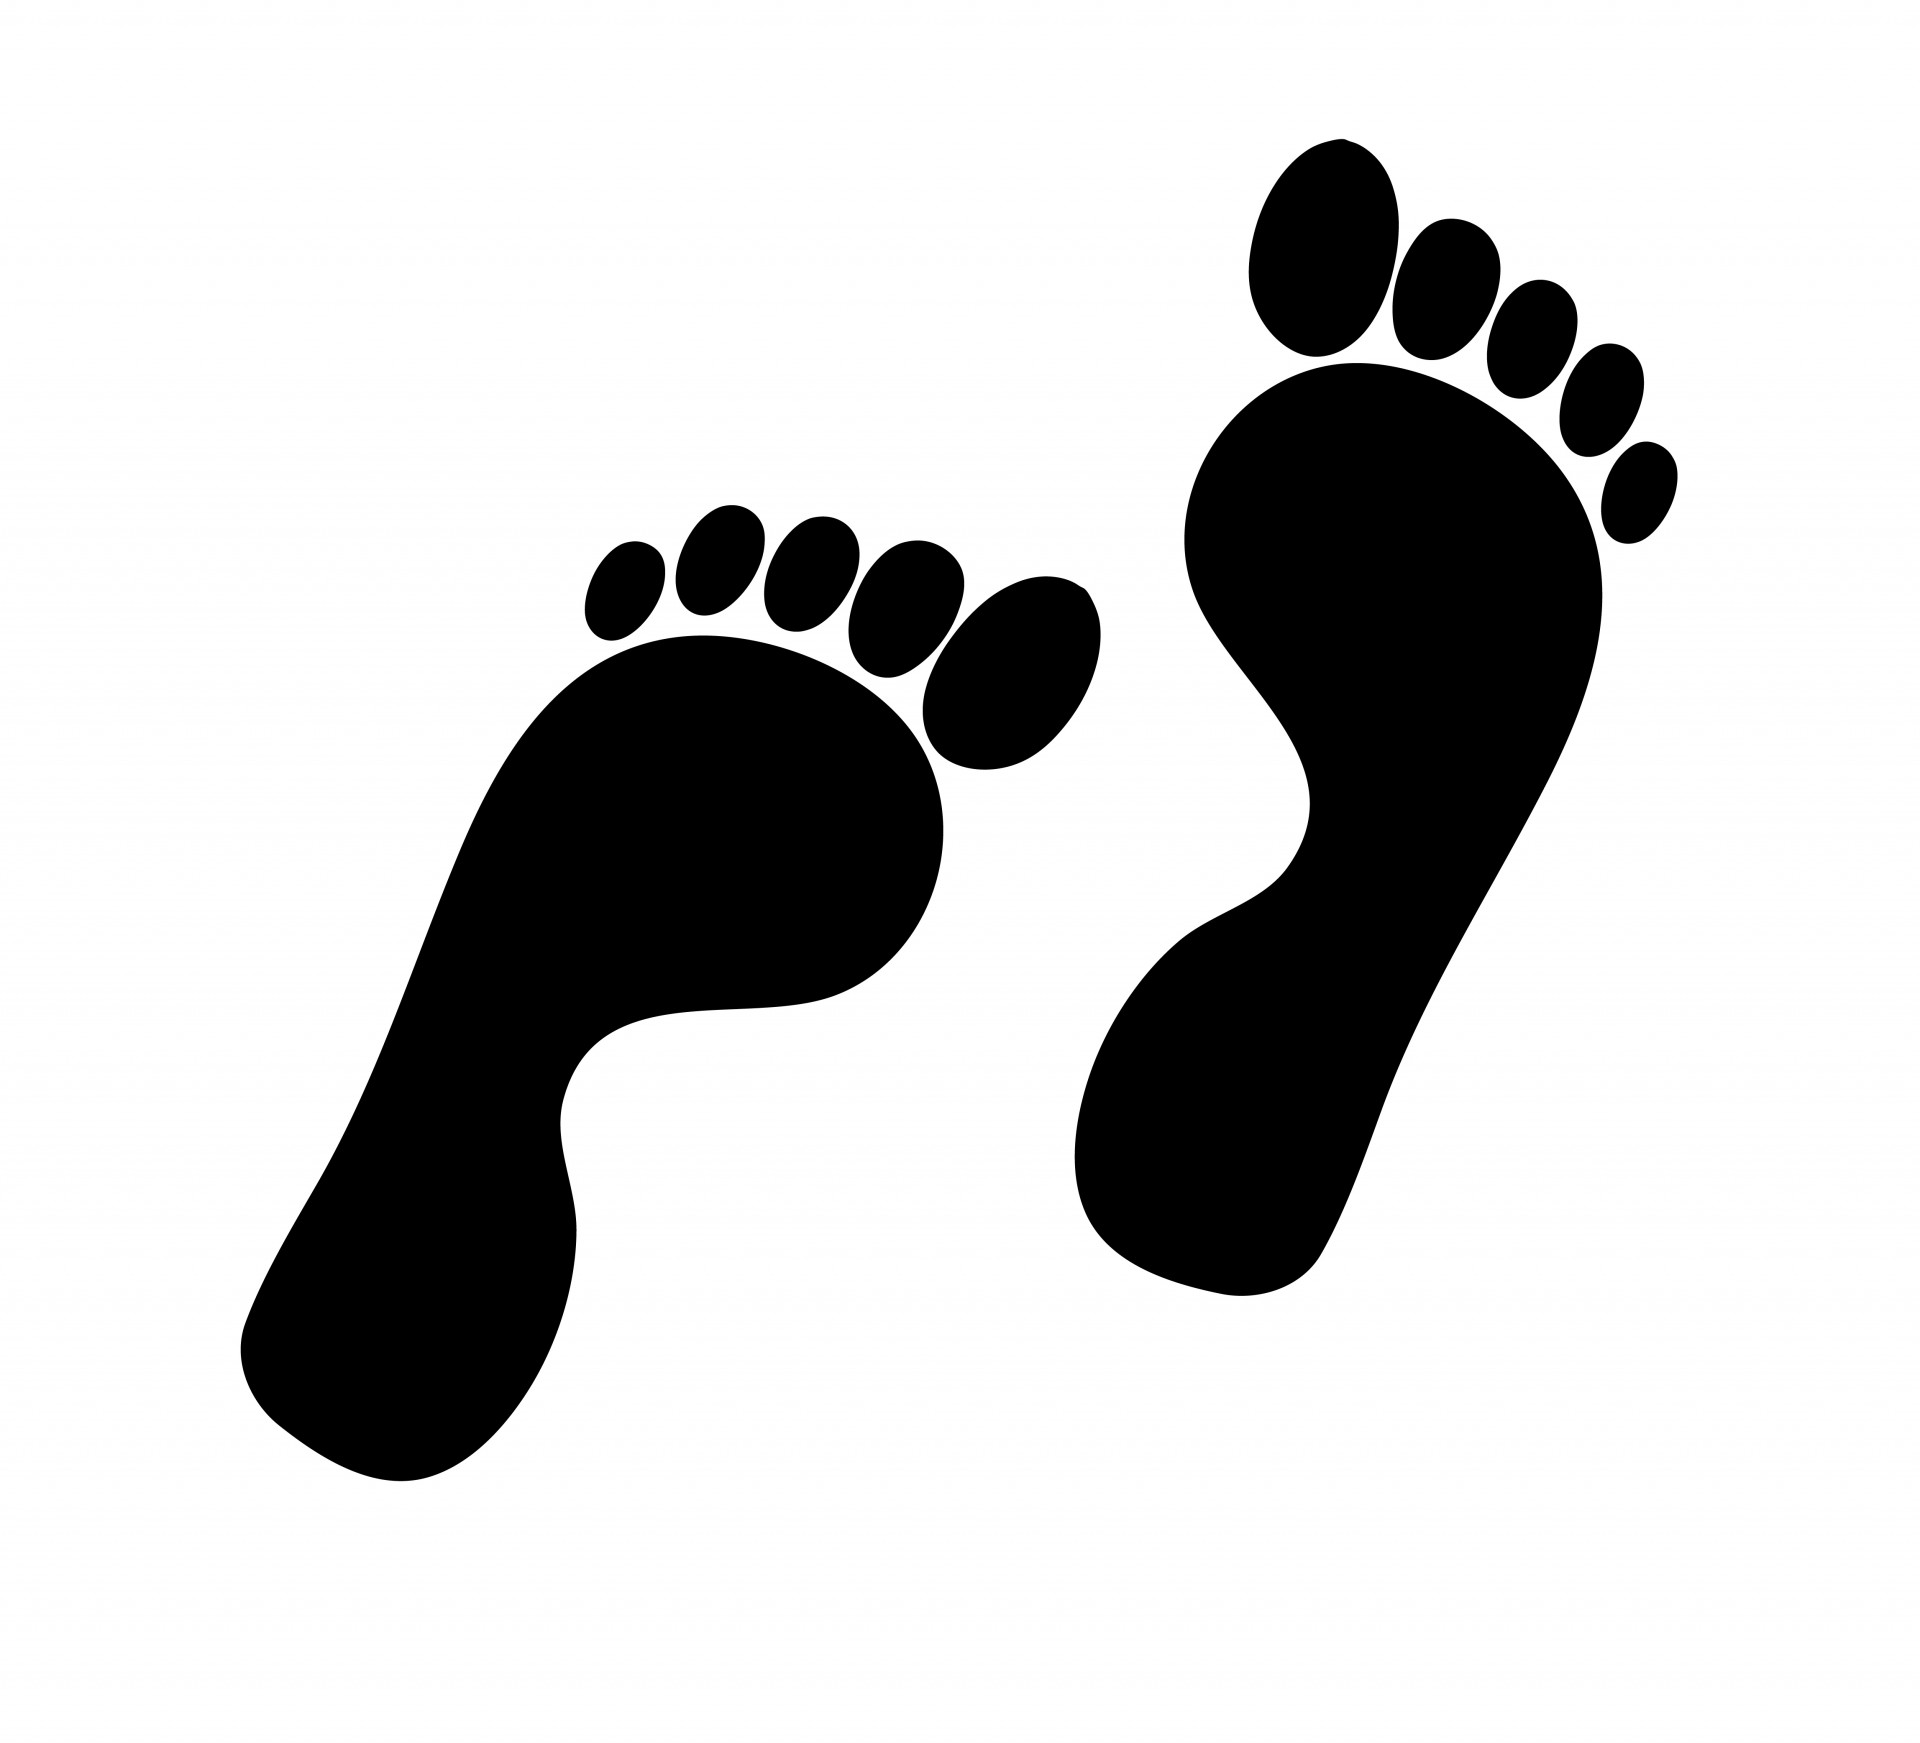 Footprints Silhouette Clipart Free Stock-Footprints Silhouette Clipart Free Stock Photo Hd Public Domain-14